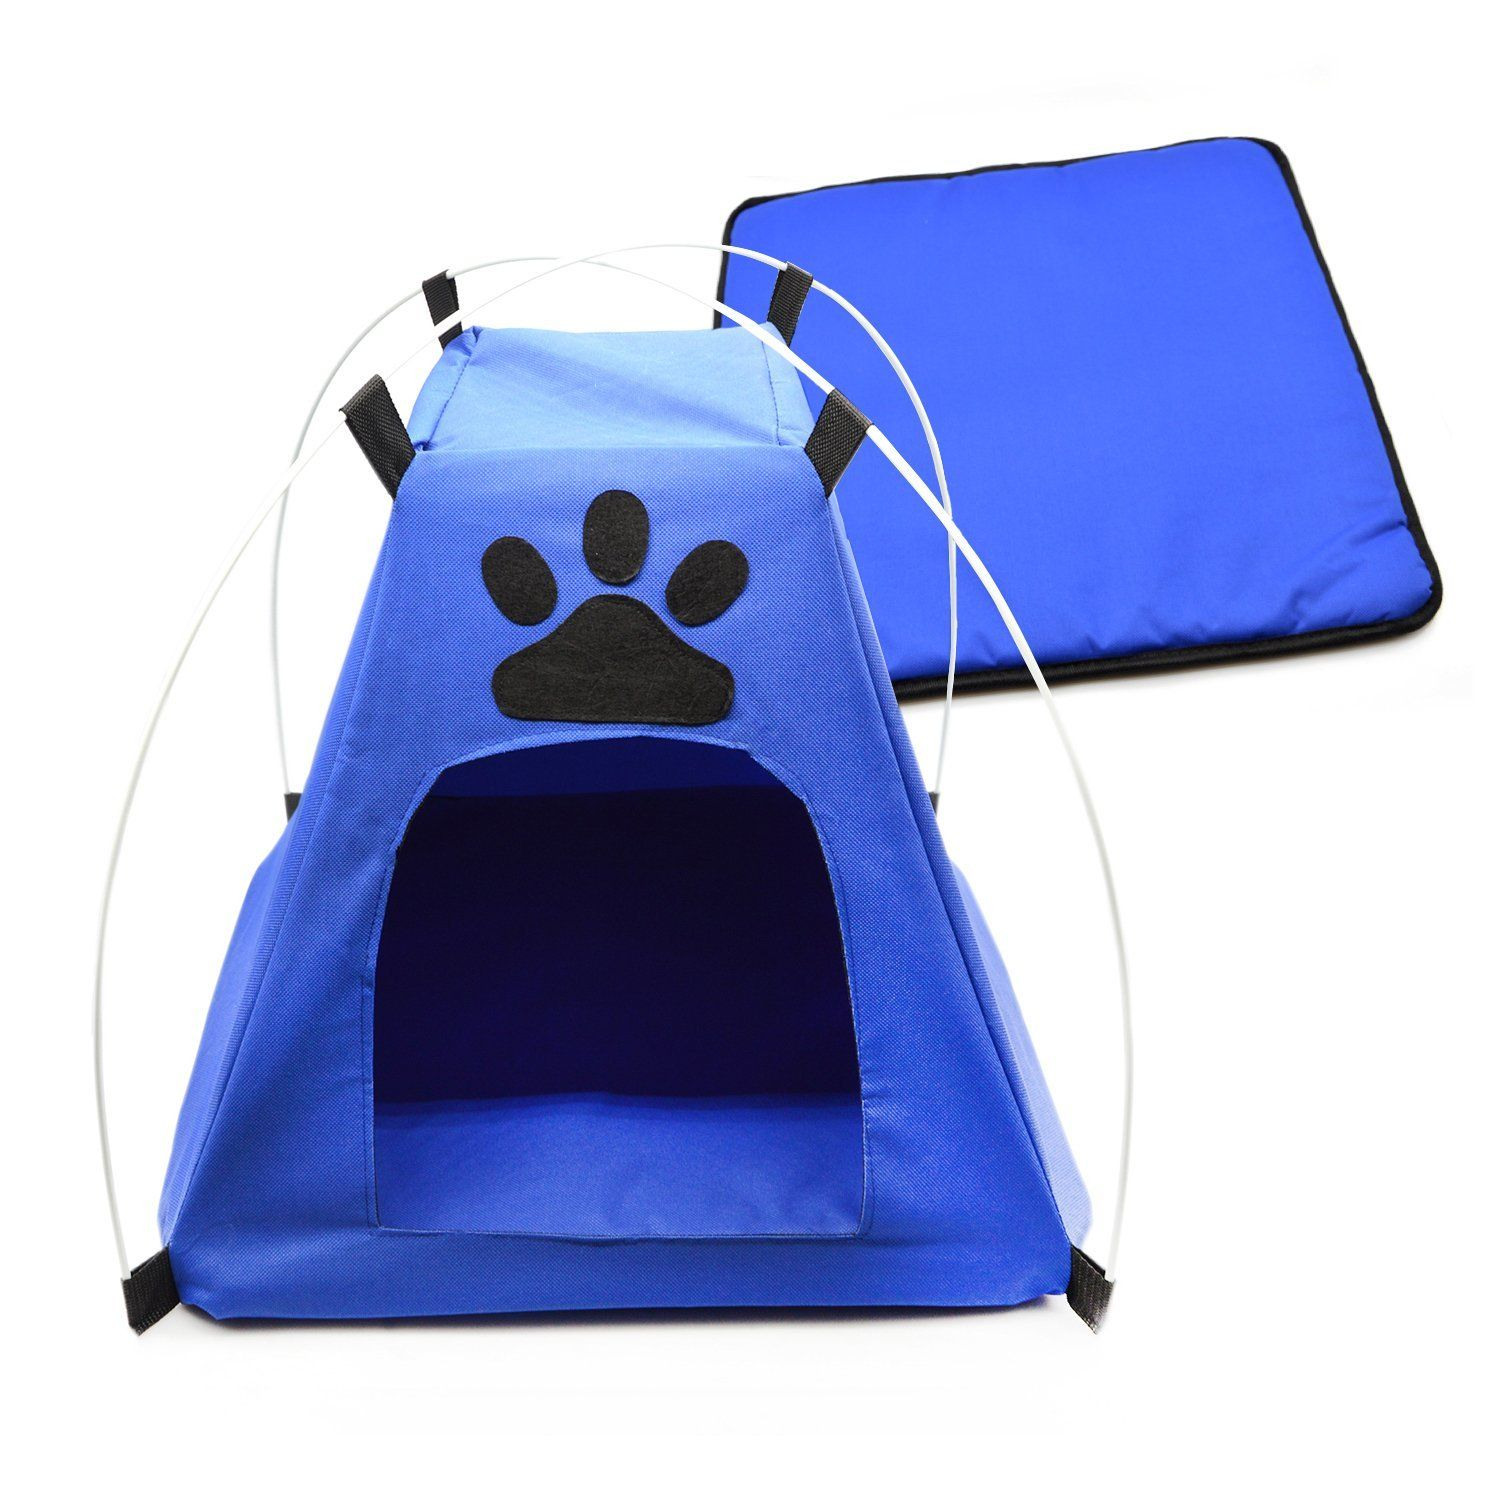 Pet C&ing Gear/Pet Tent /Dog Tent /Cat Tent /Pop Up Pet  sc 1 st  Pinterest & Pet Camping Gear/Pet Tent /Dog Tent /Cat Tent /Pop Up Pet Tent/Pet ...